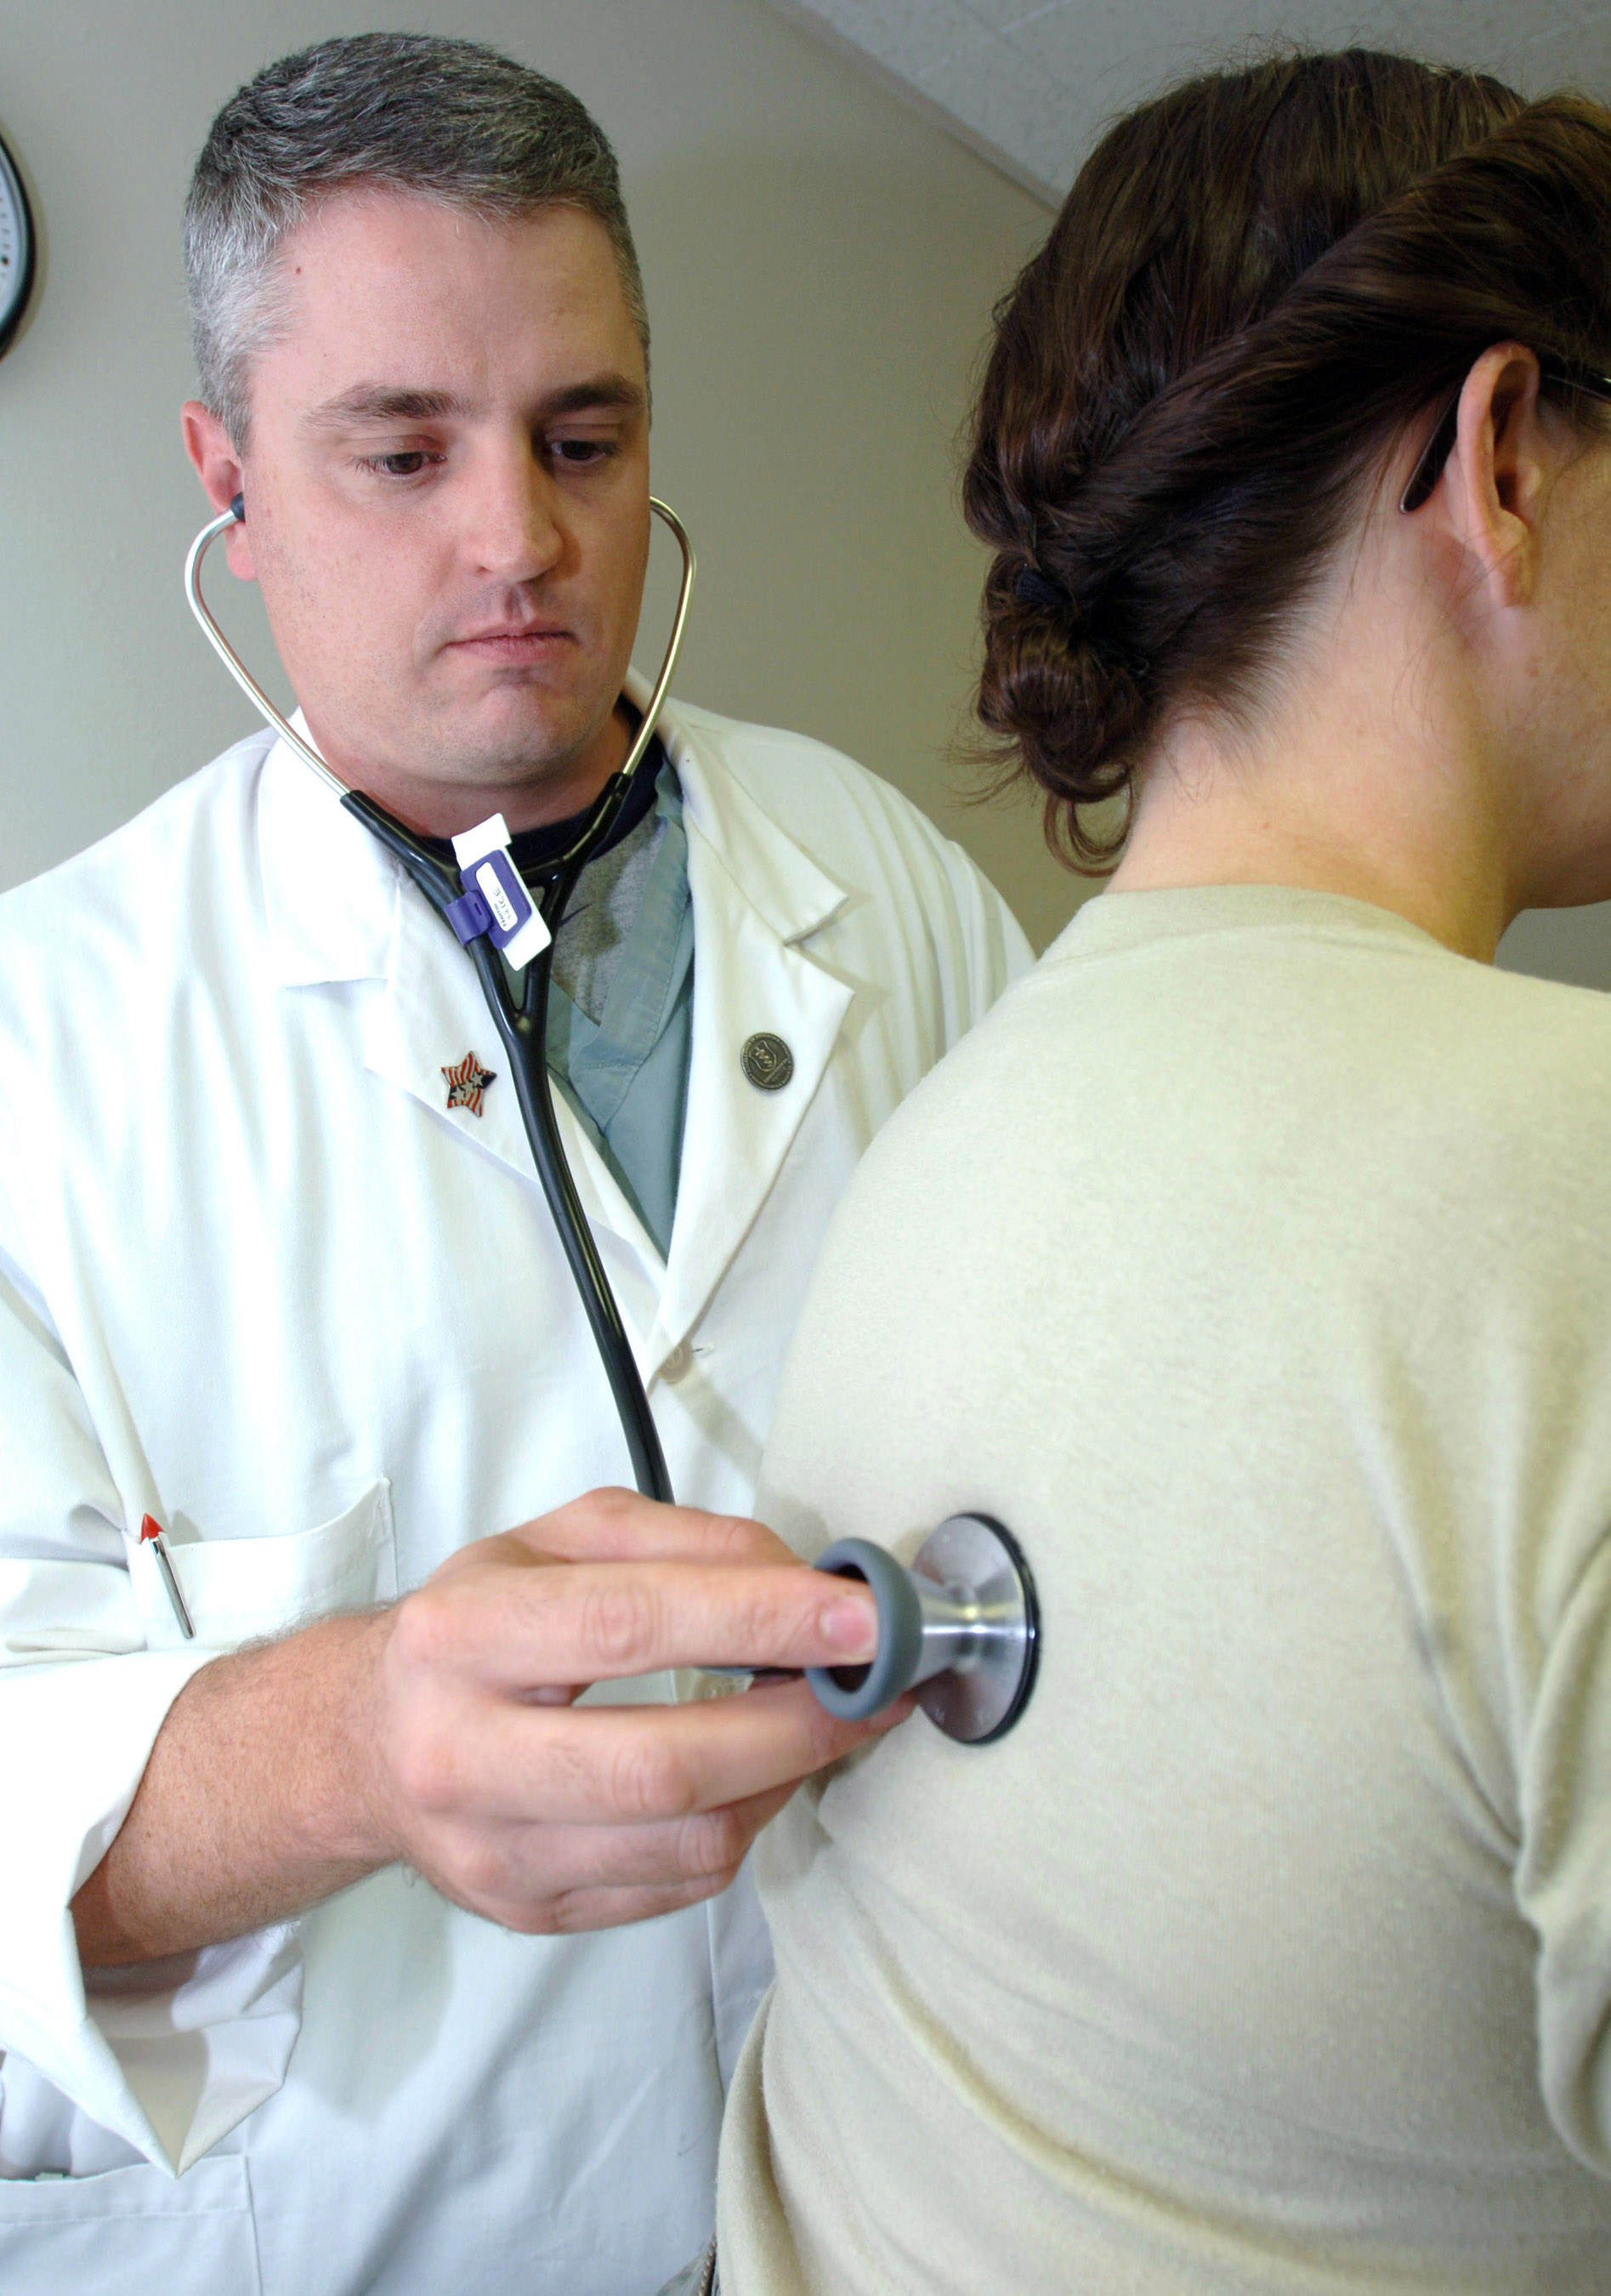 File:Physical examination.jpg - Wikipedia, the free encyclopedia